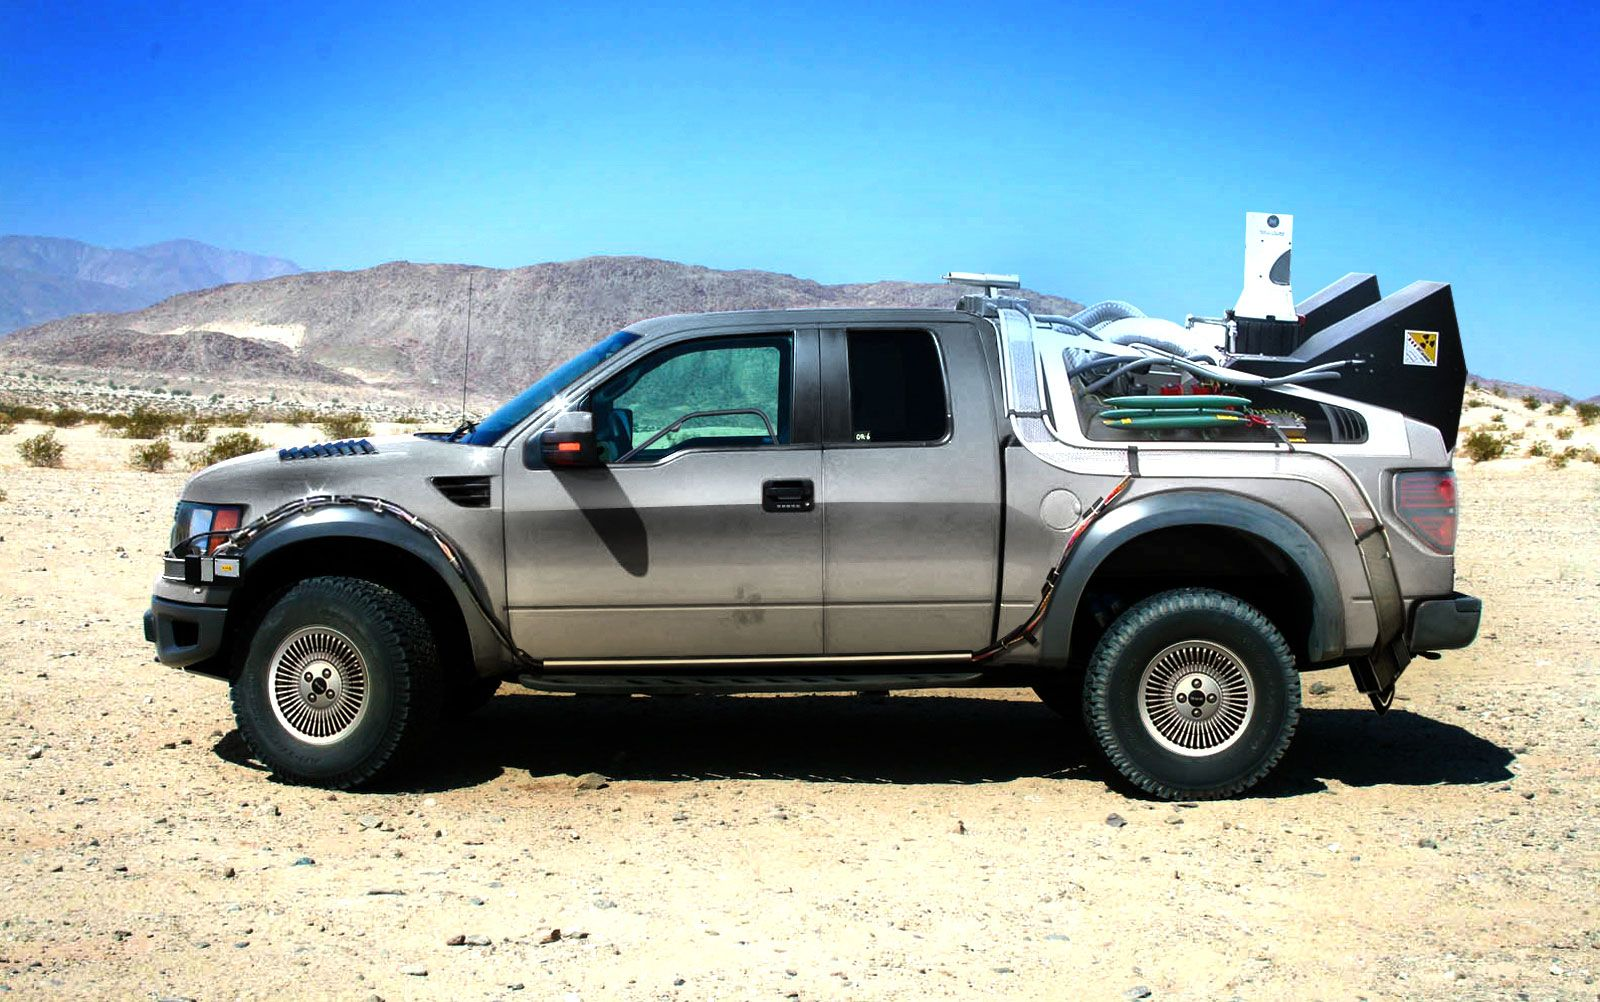 Ford raptor back to the future delorean style 15123 hd wheels ford raptor back to the future delorean style 15123 hd voltagebd Gallery